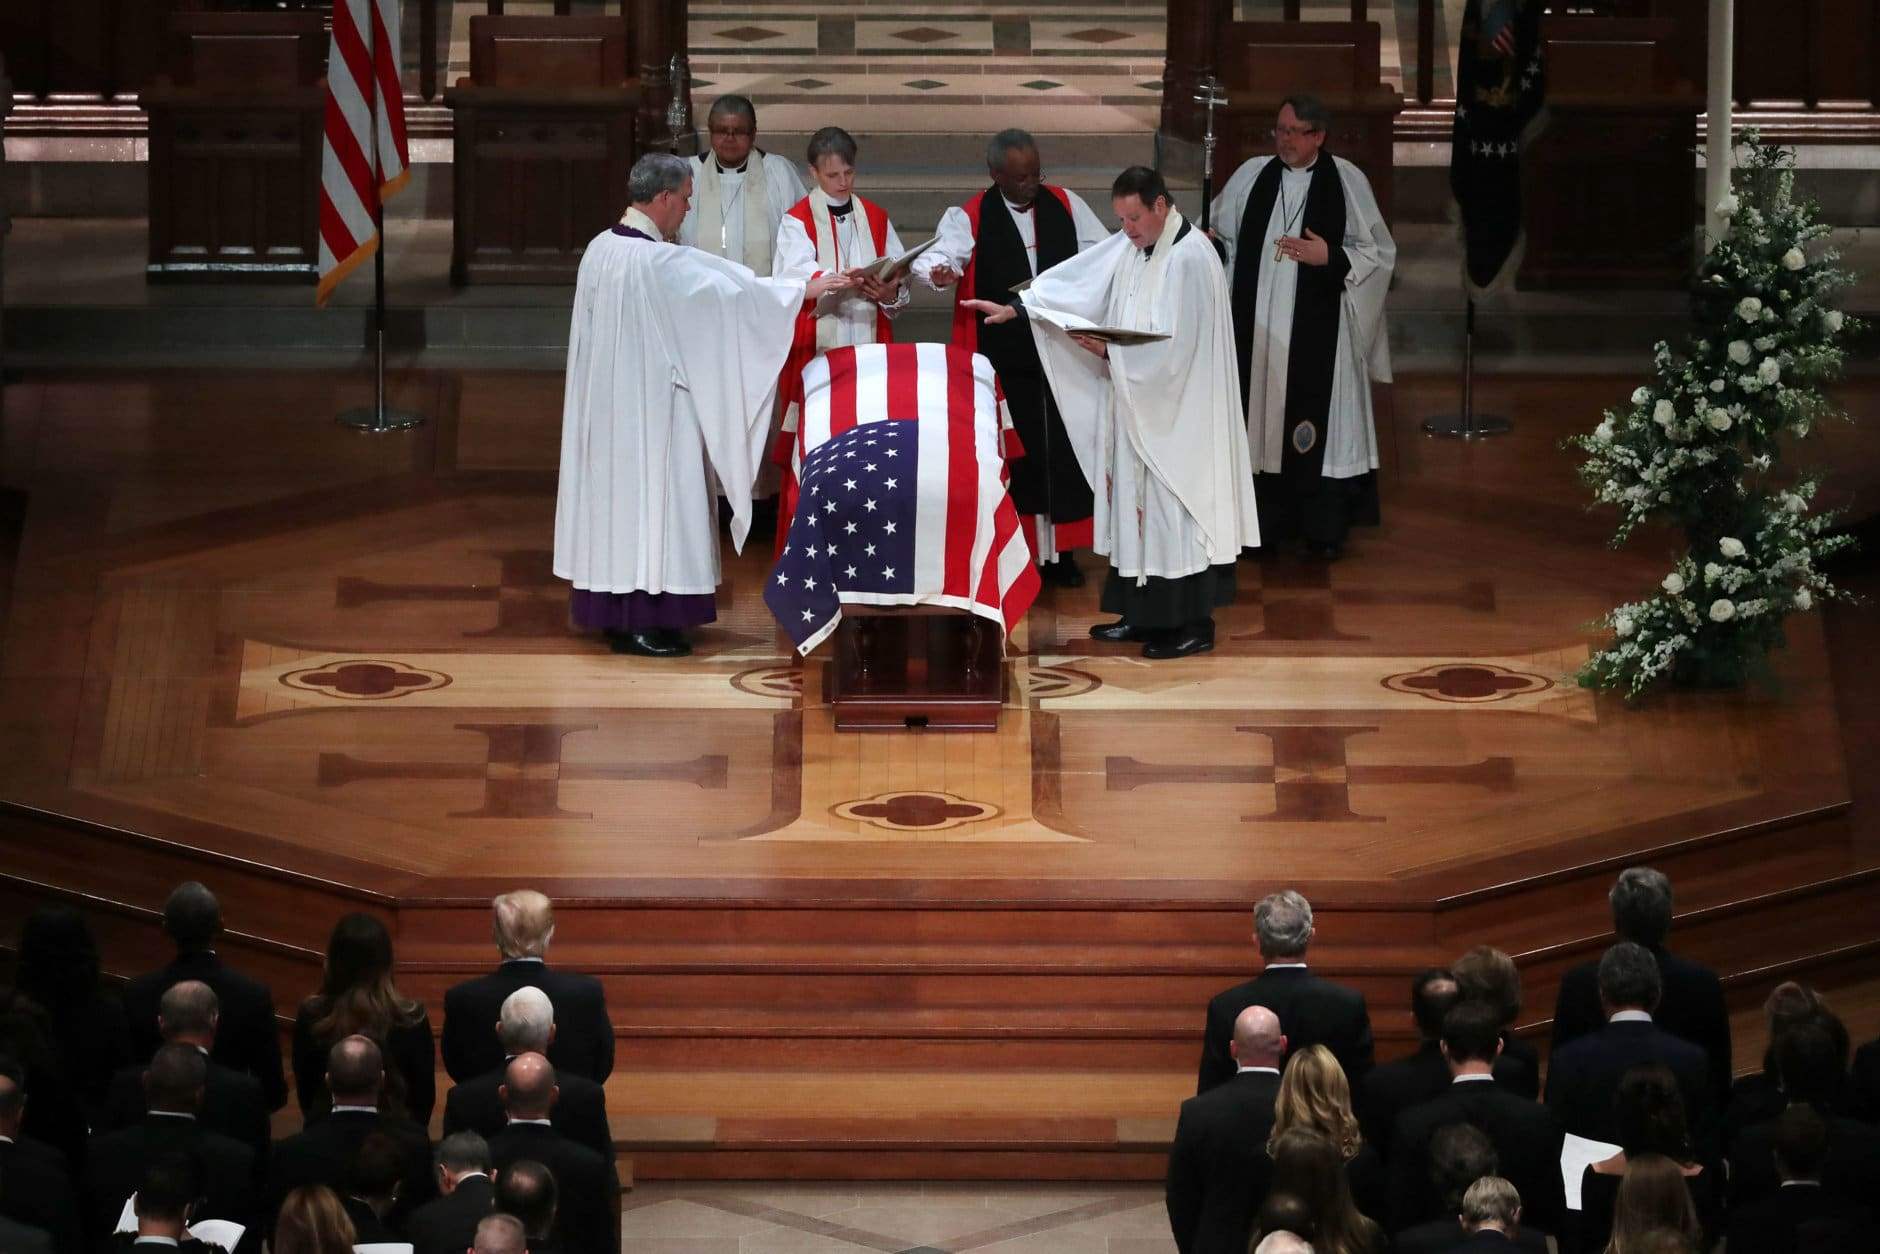 WASHINGTON, DC - DECEMBER 05:  Clergy pray over former President George H.W. Bush's flag-draped casket during his state funeral at the National Cathedral December 05, 2018 in Washington, DC. A WWII combat veteran, Bush served as a member of Congress from Texas, ambassador to the United Nations, director of the CIA, vice president and 41st president of the United States.  (Photo by Chip Somodevilla/Getty Images)